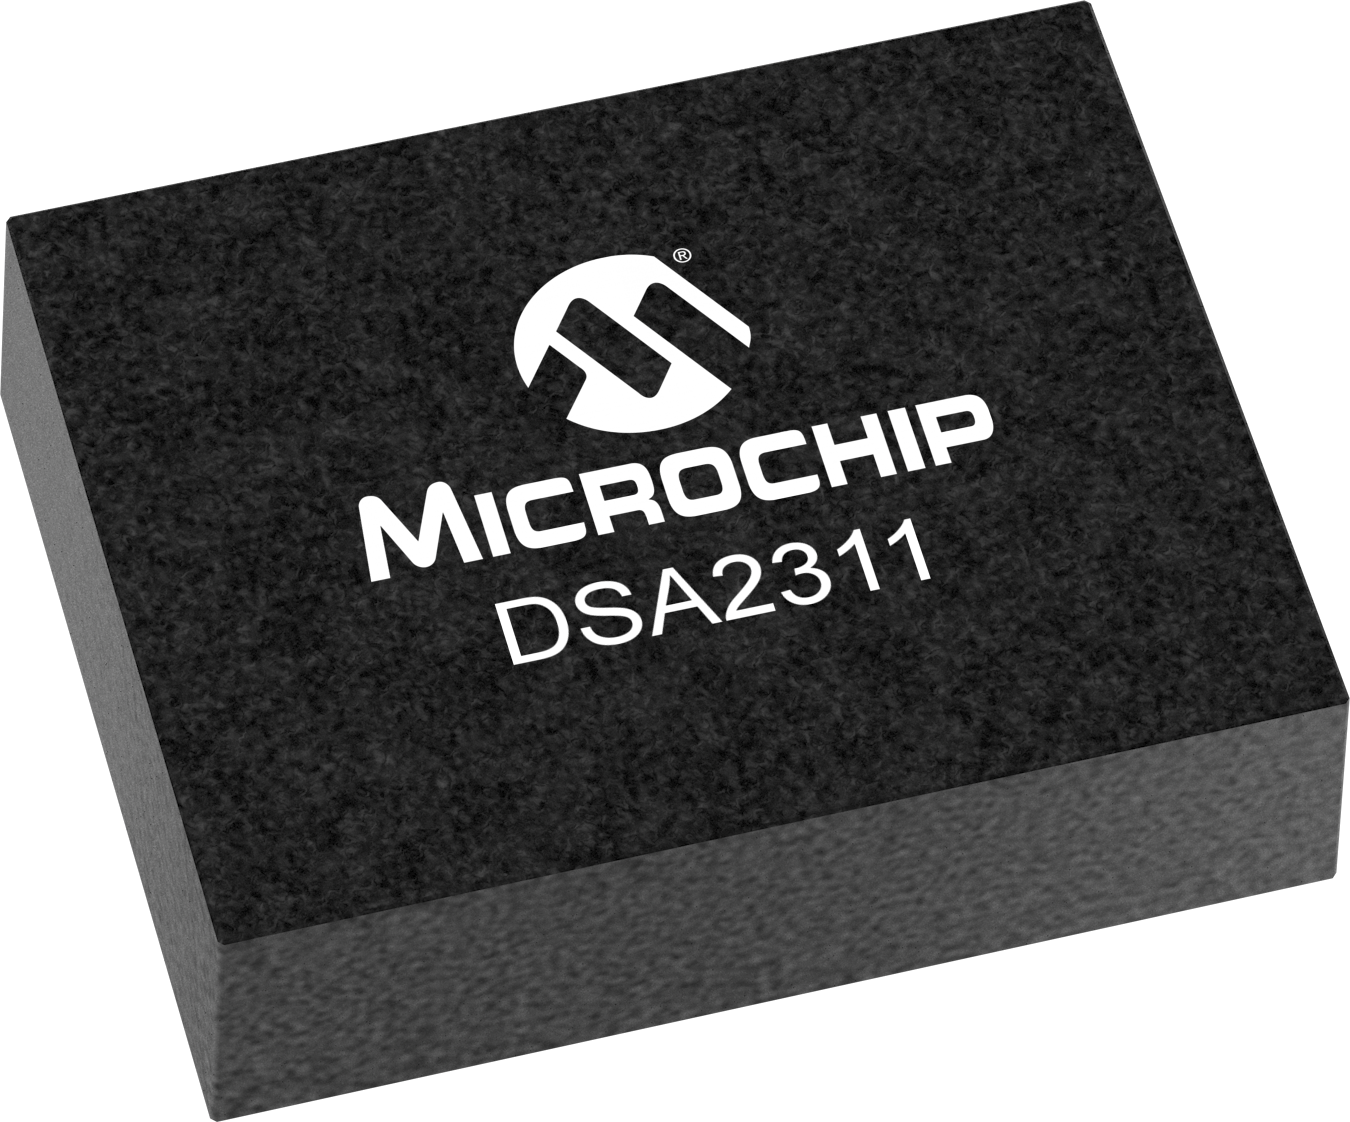 dsa2311-vdfn-6_multi-output_chip